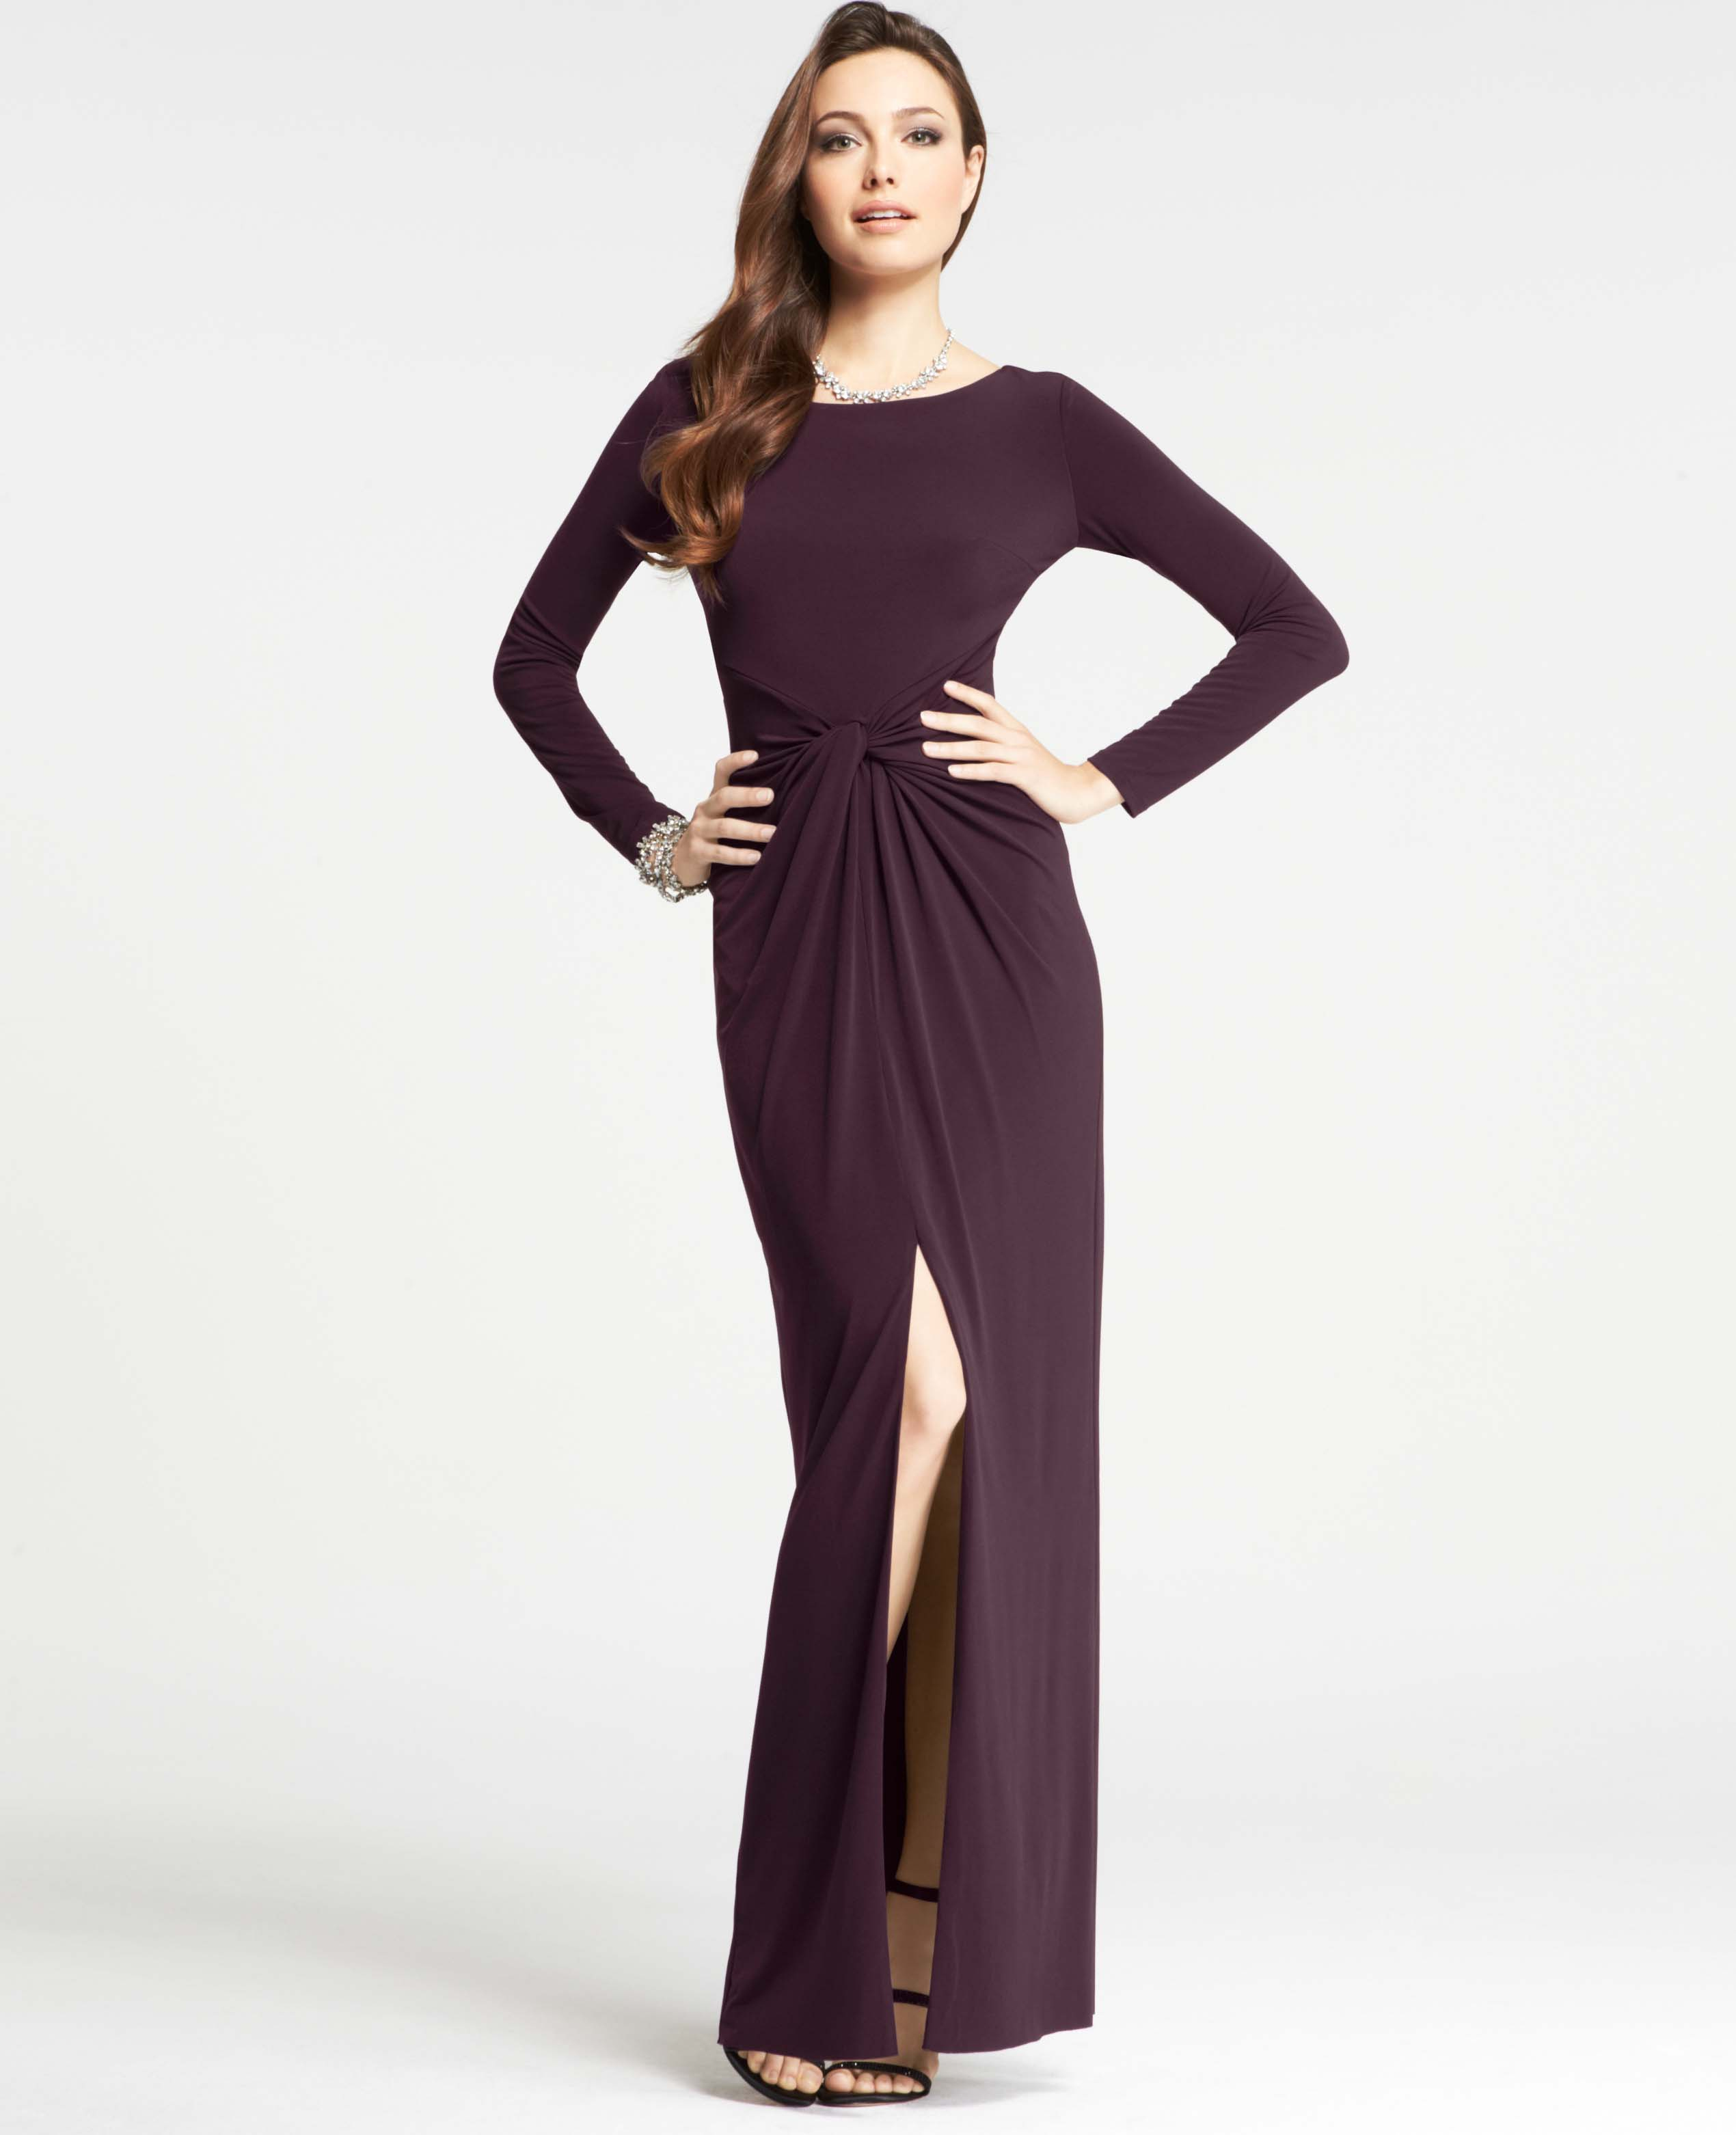 Lyst - Ann Taylor Modern Gala Jersey Long Sleeve Gown in Purple